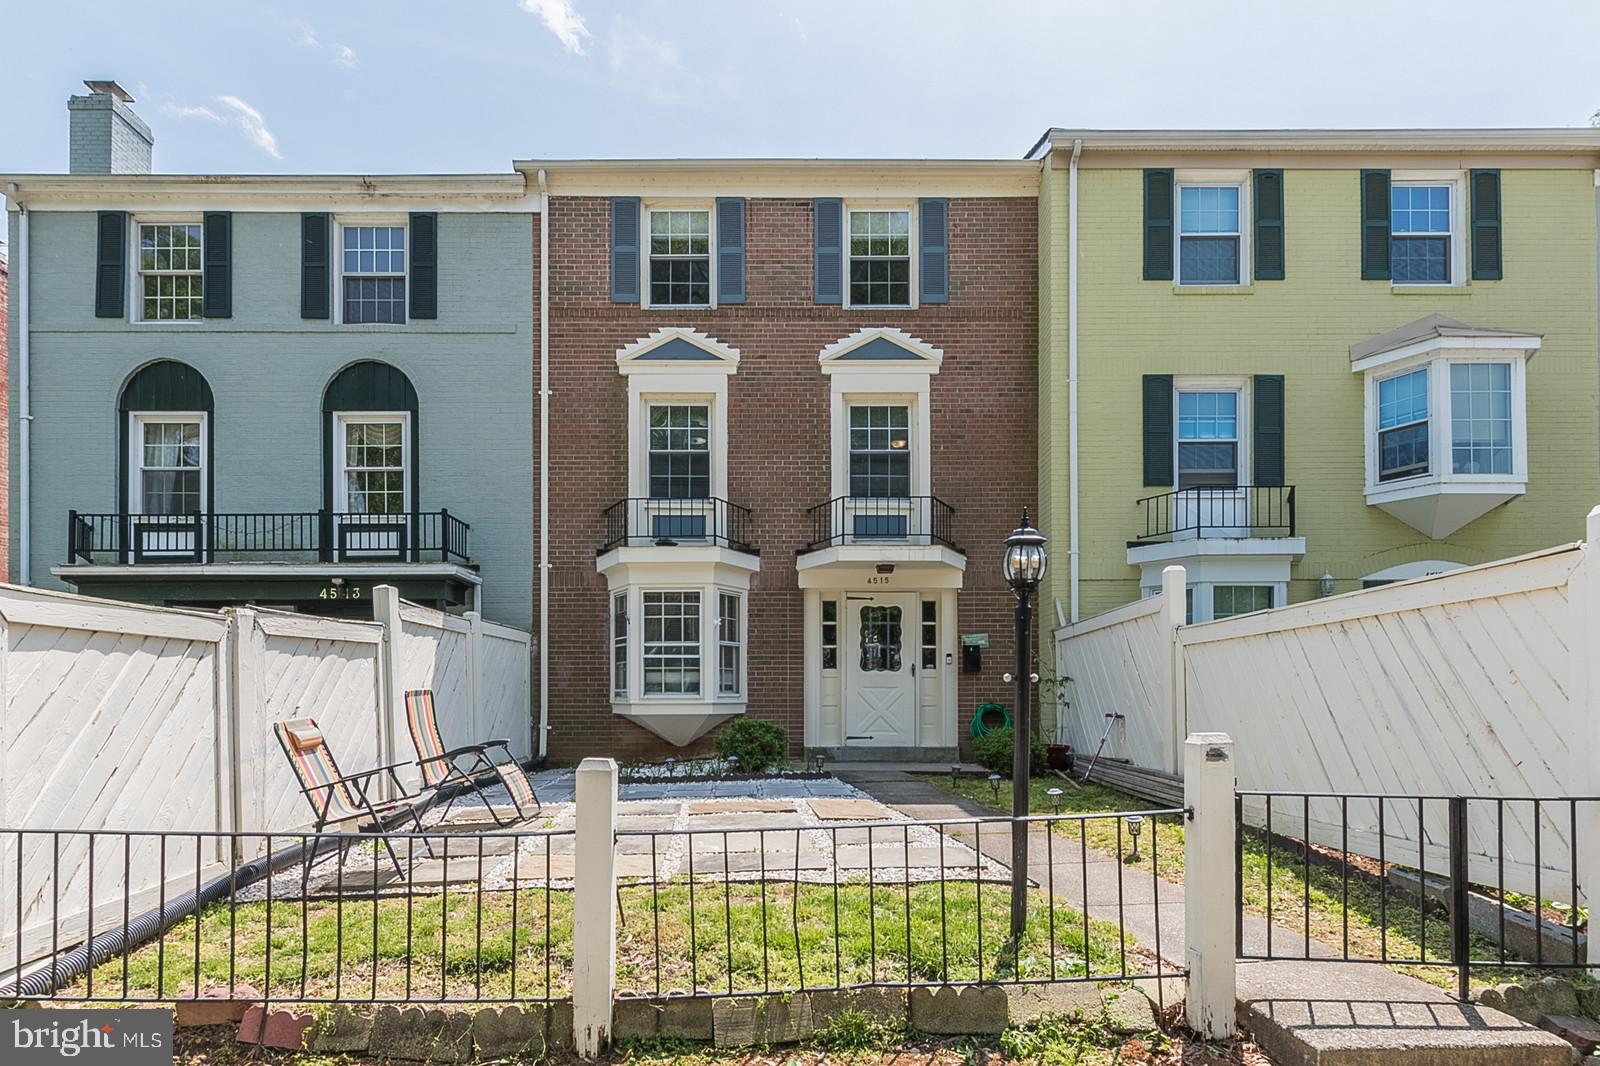 Beautiful & spacious town home featuring 3 finished levels, renovated kitchen w/ granite countertops, 4 bedrooms, 3 baths, hardwood floors on the main level, an open floor plan, a fenced in rear yard and front yard with your own private 2 car driveway overlooking the park and backing up to the tot lot/playground. Just mins from Old Town Alexandria.